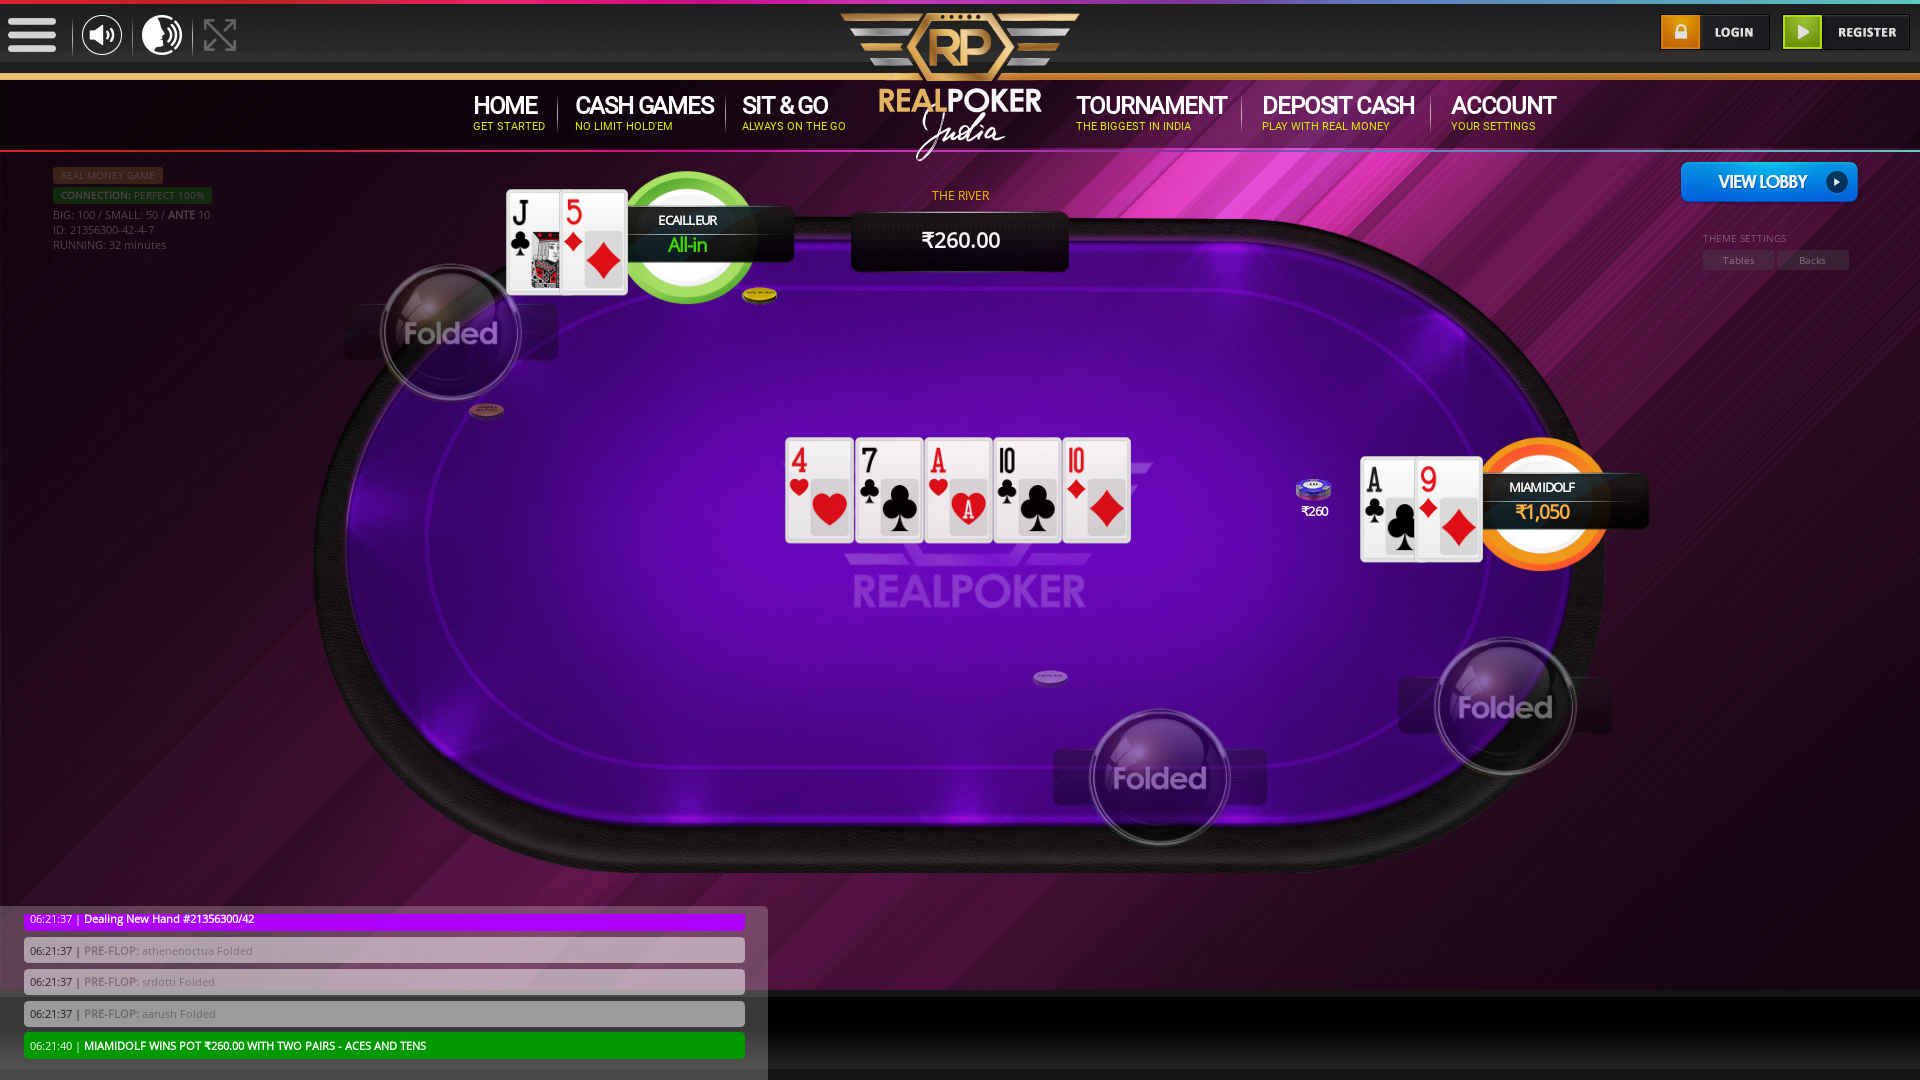 The 42nd hand dealt between athenenoctua, srdotti, aarush, miamidolf, Ecailleur,  on poker india